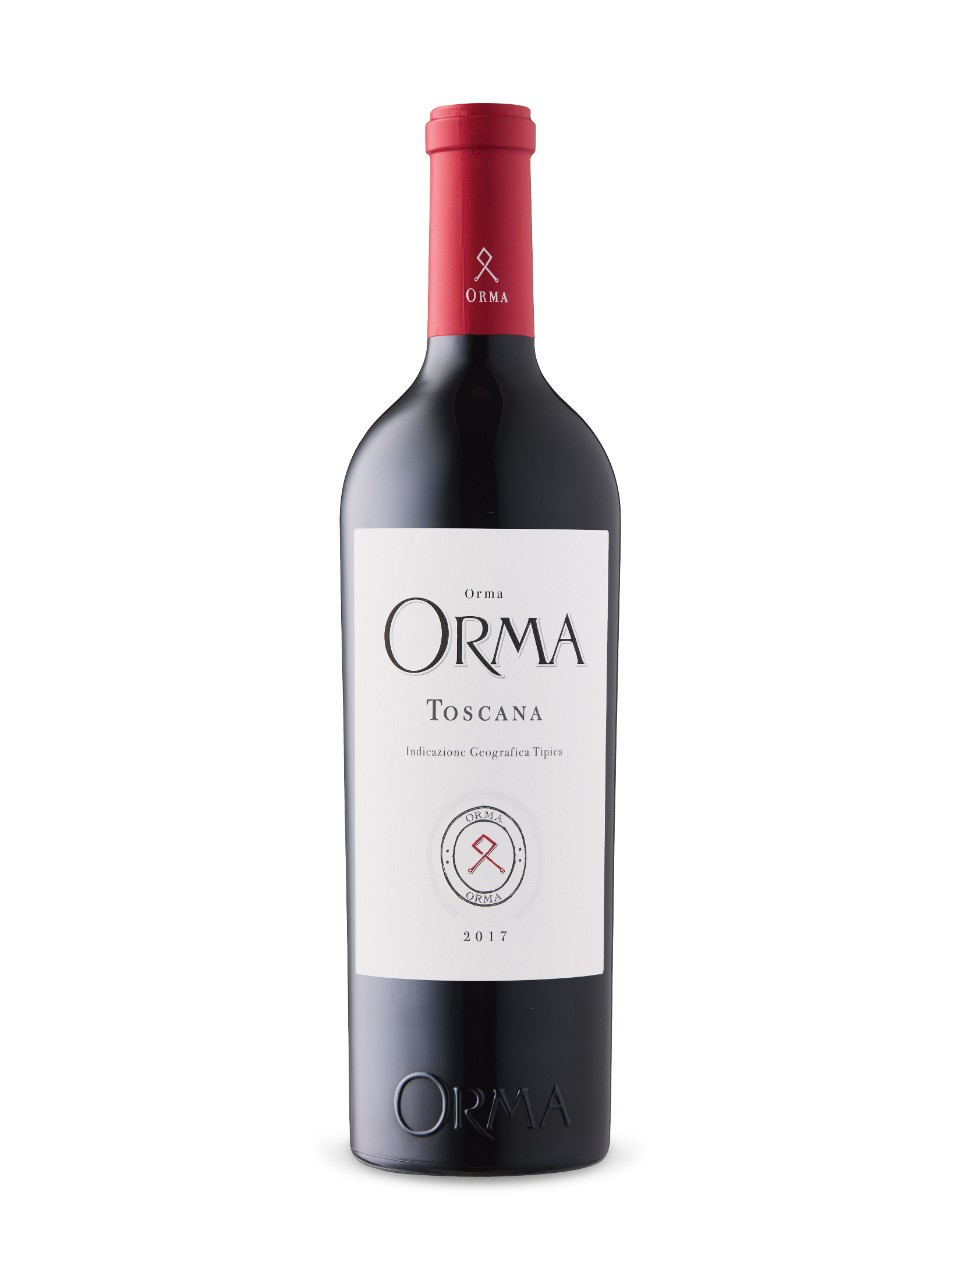 Orma 2014